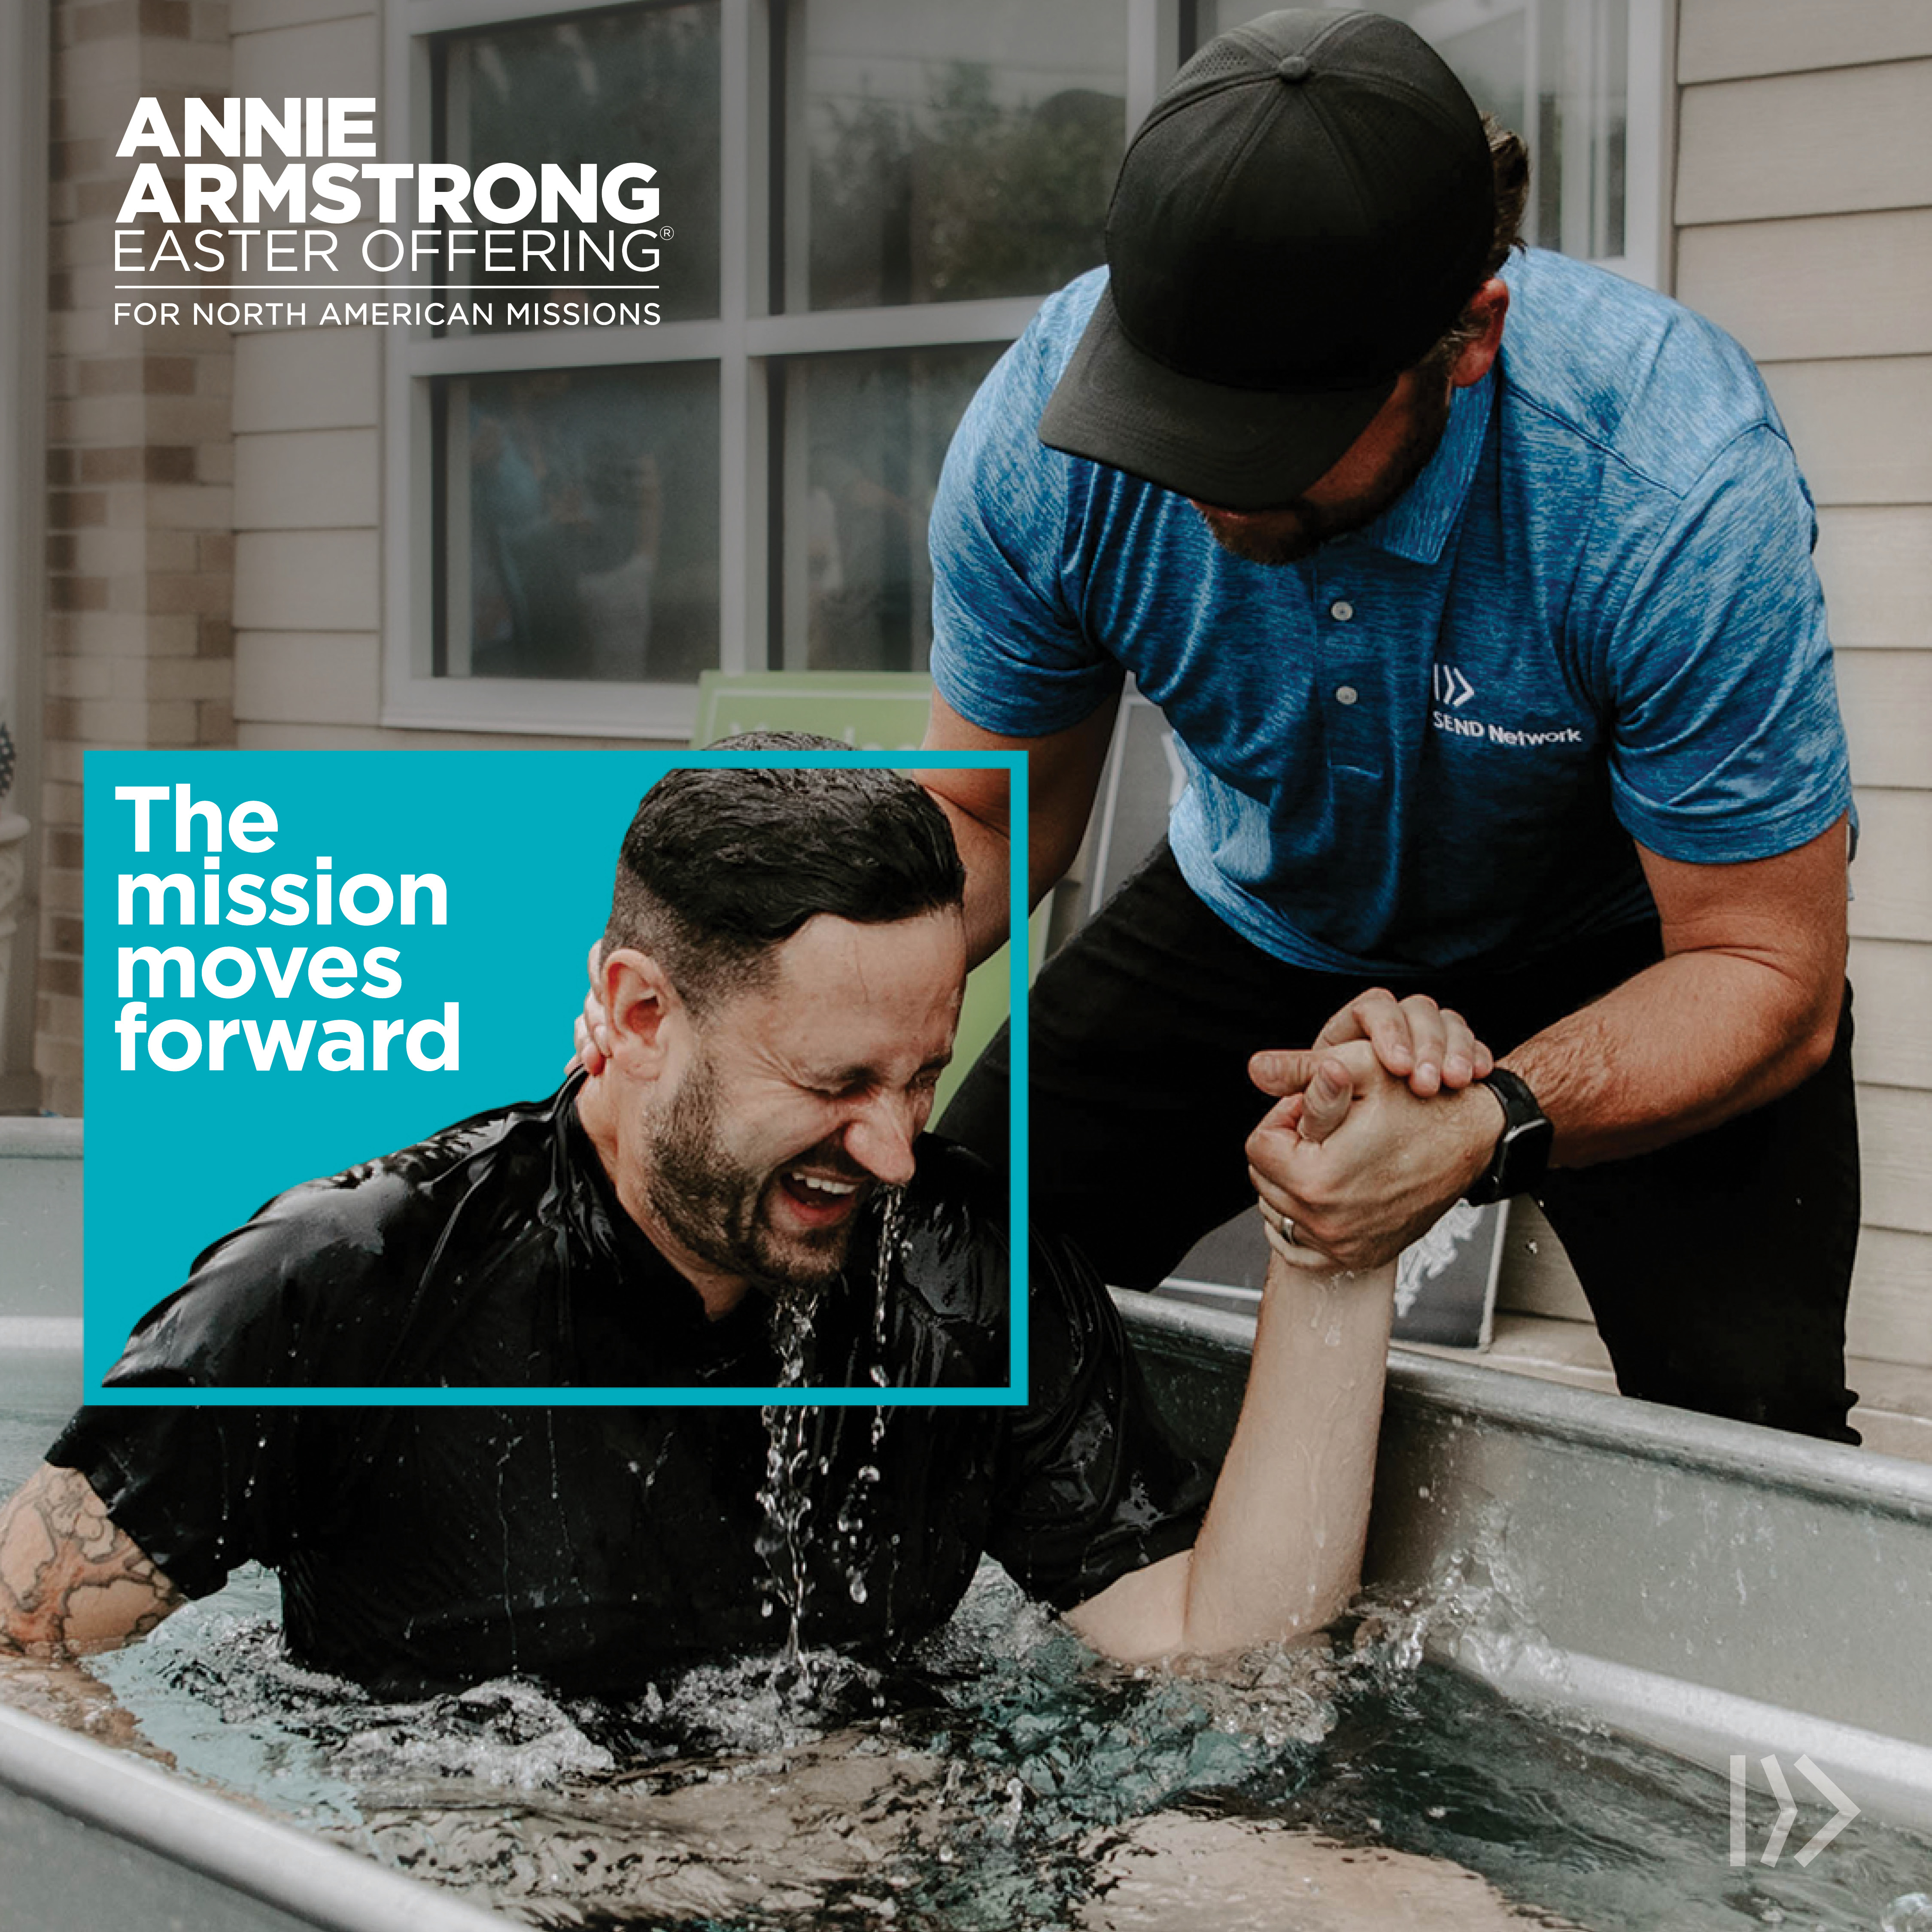 Week of Prayer for North American Mission /Annie Armstrong Easter Offering